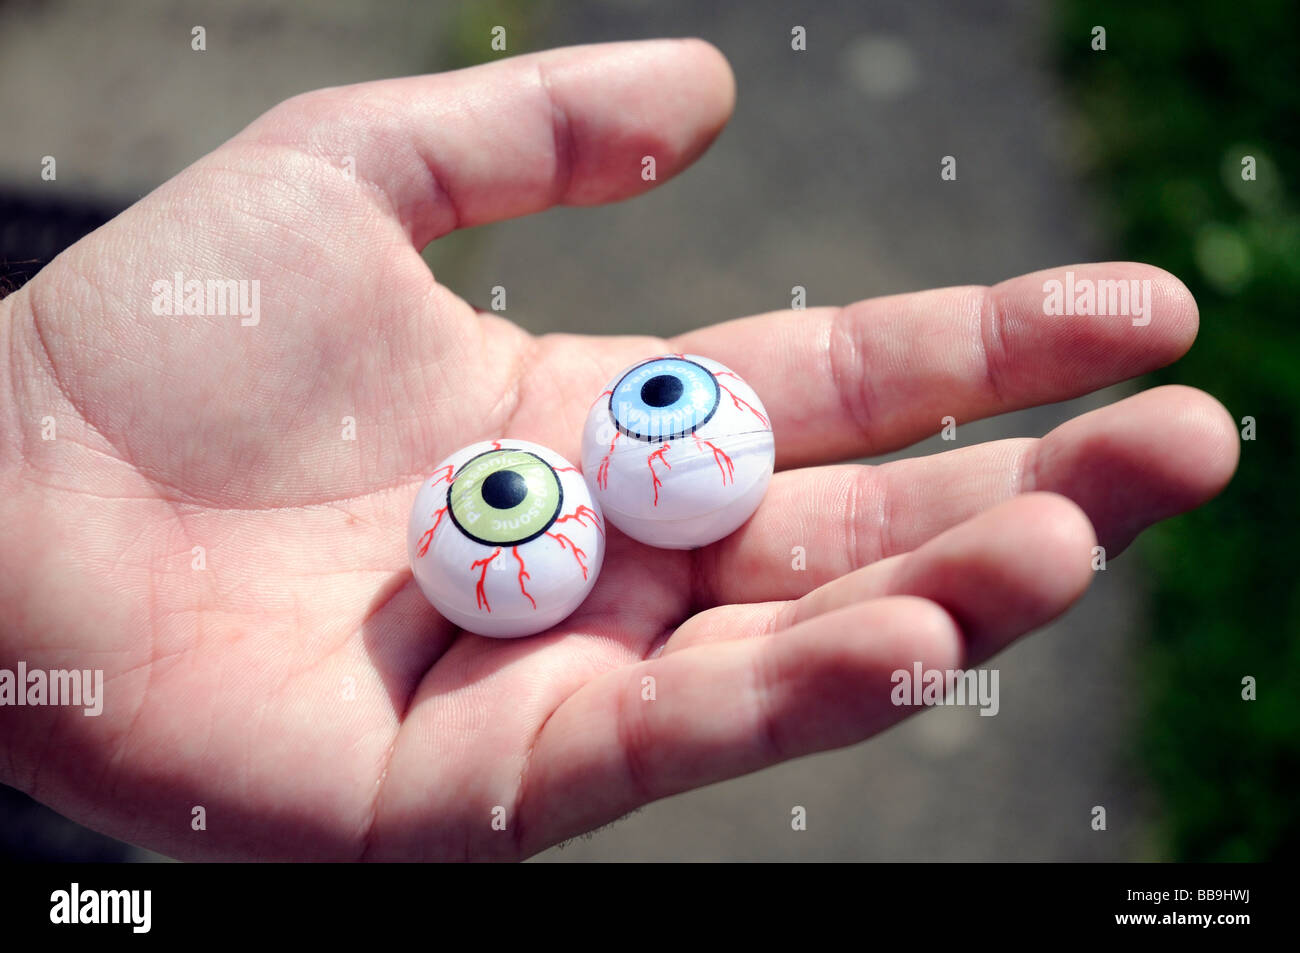 Eyes in Hand. - Stock Image